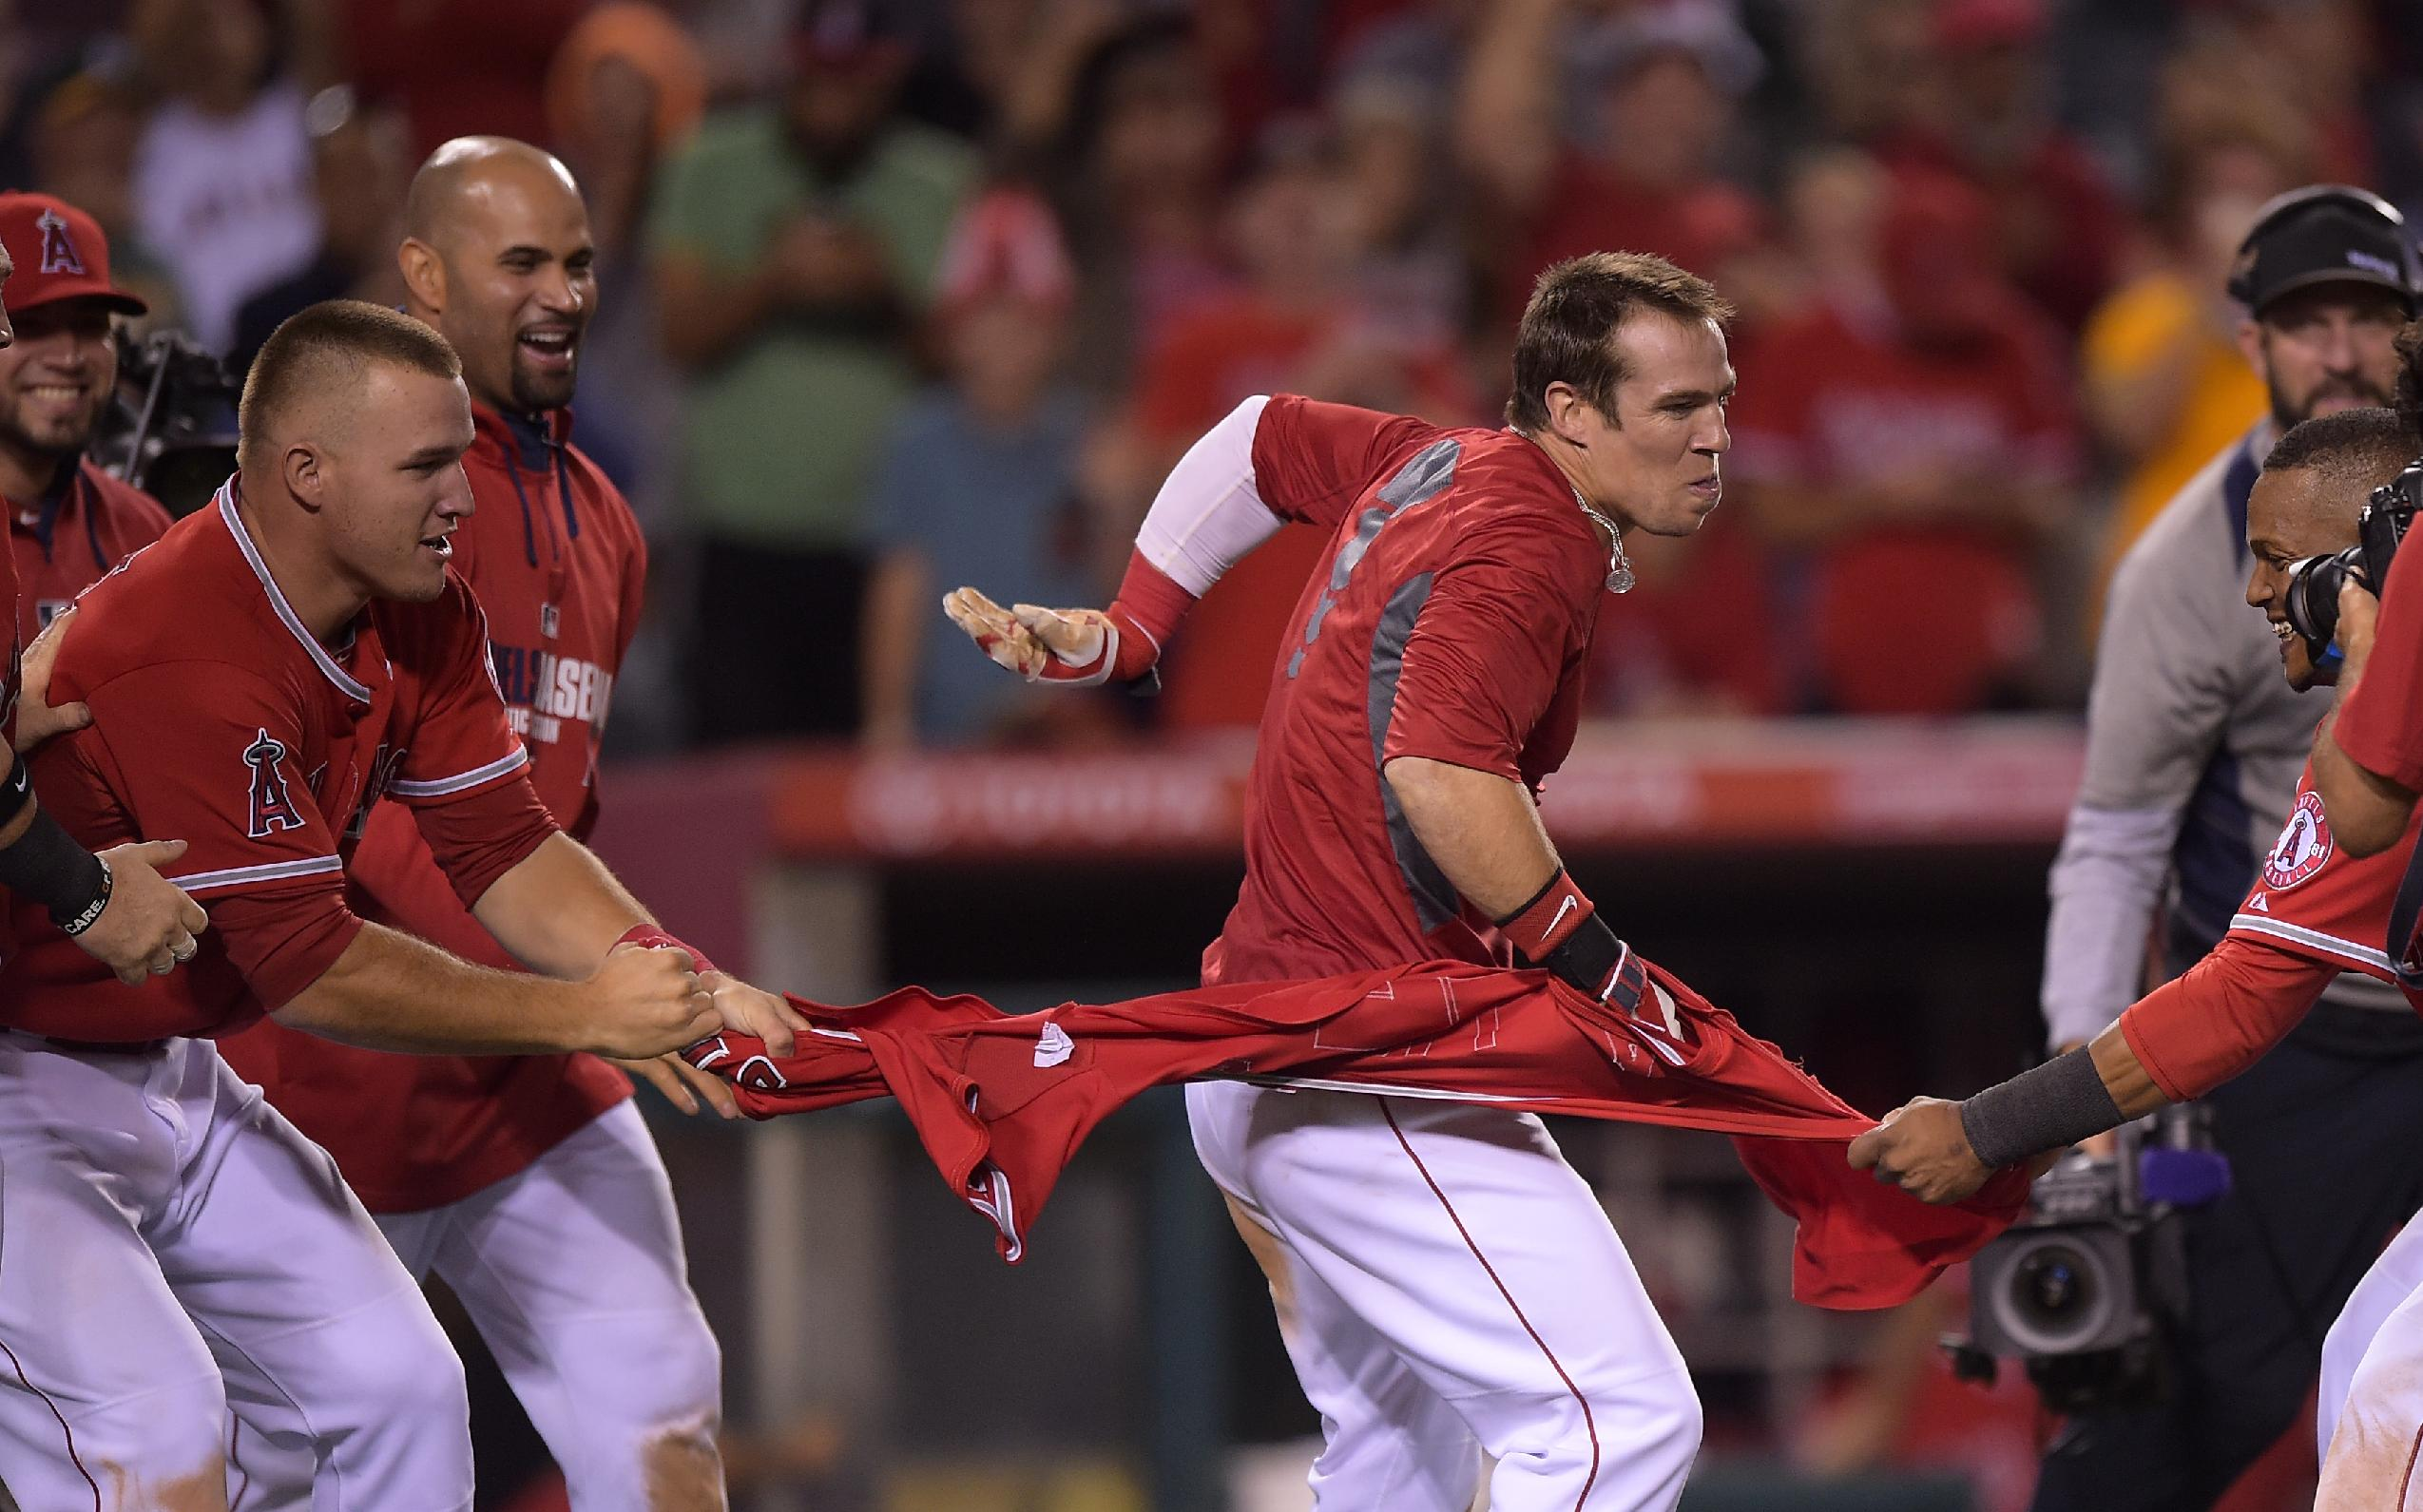 Cowgill's 14th-inning HR puts Angels past A's 2-1